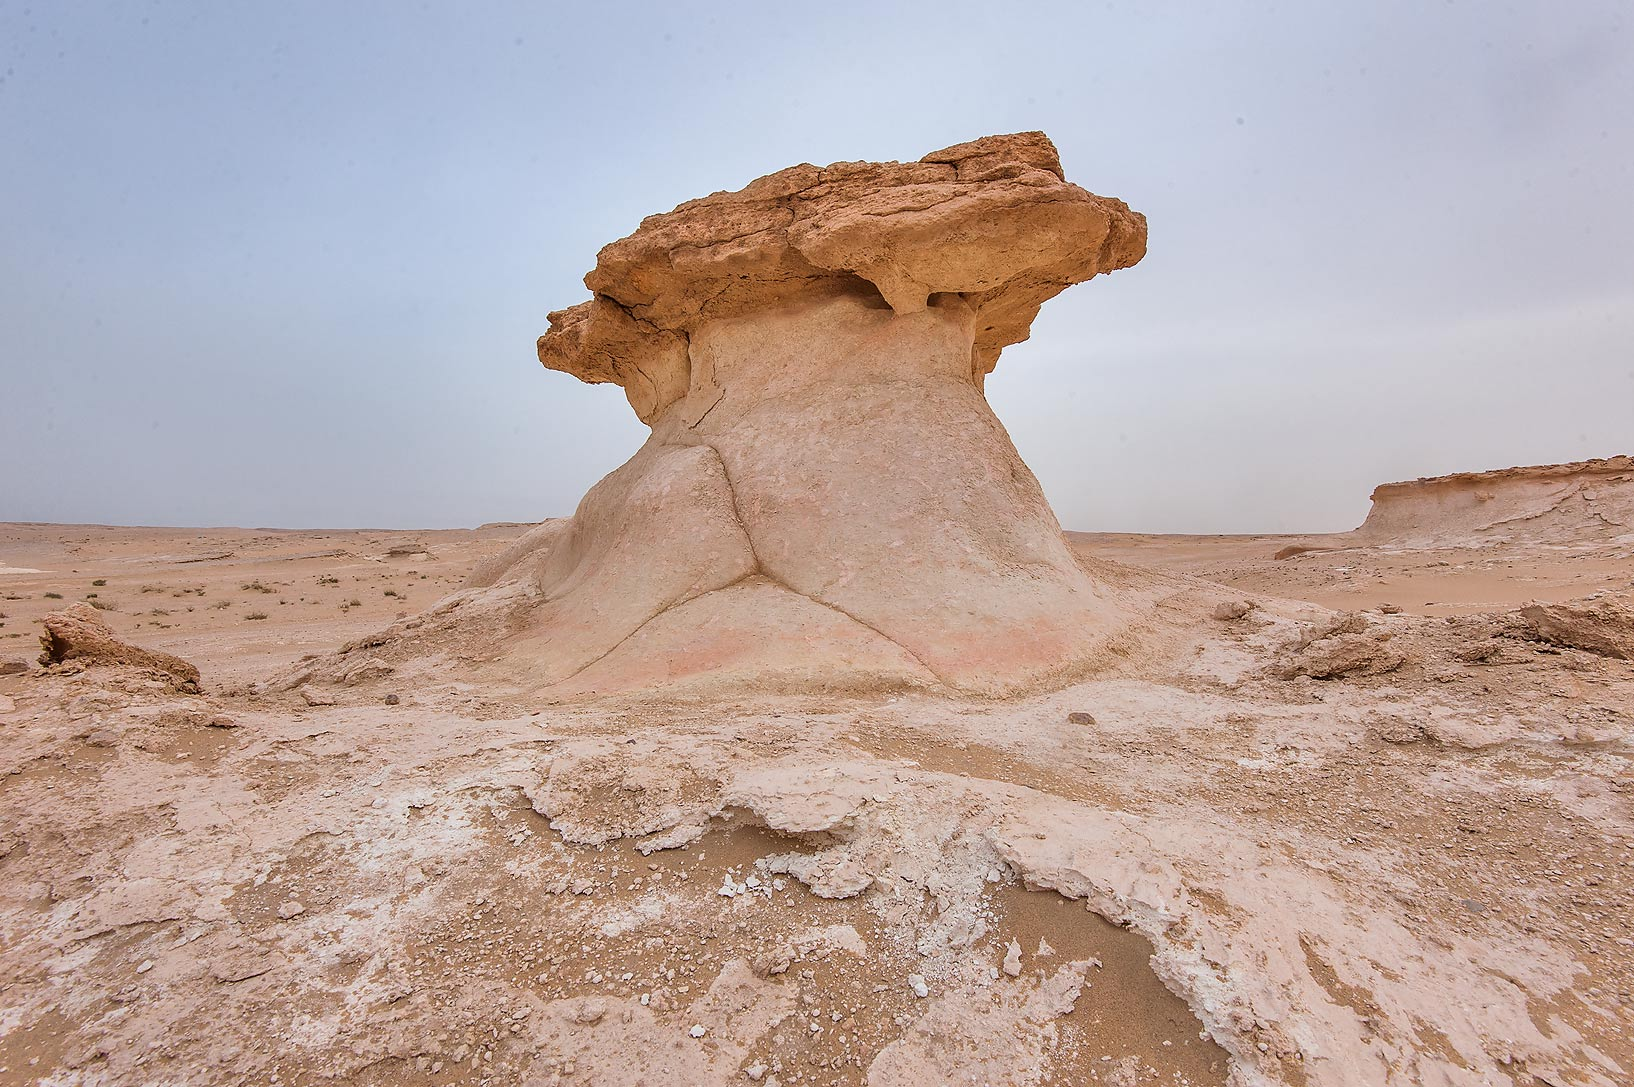 Limestone mushroom in area of Nakhsh Mountain near Salwa Rd. in southern Qatar